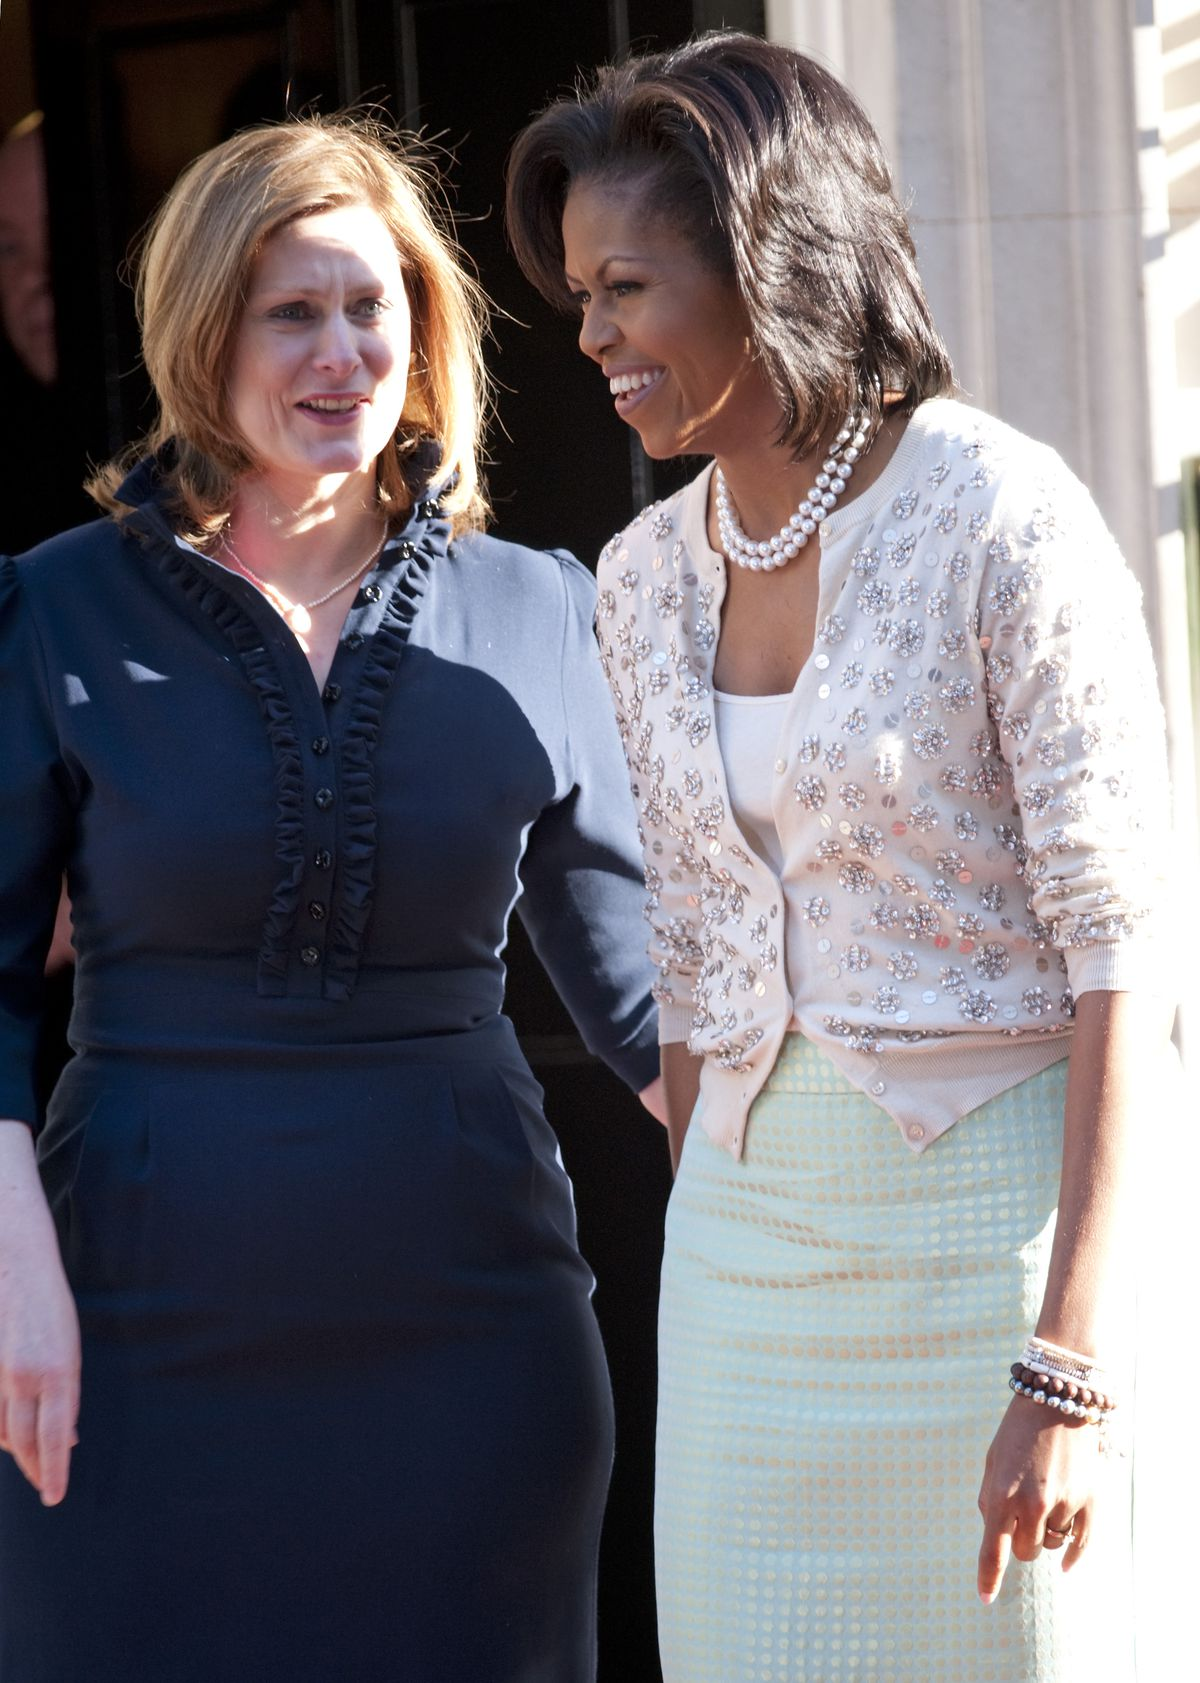 Michelle Obama at 10 Downing Street in London wearing a cardigan and skirt by J.Crew in May 2009.